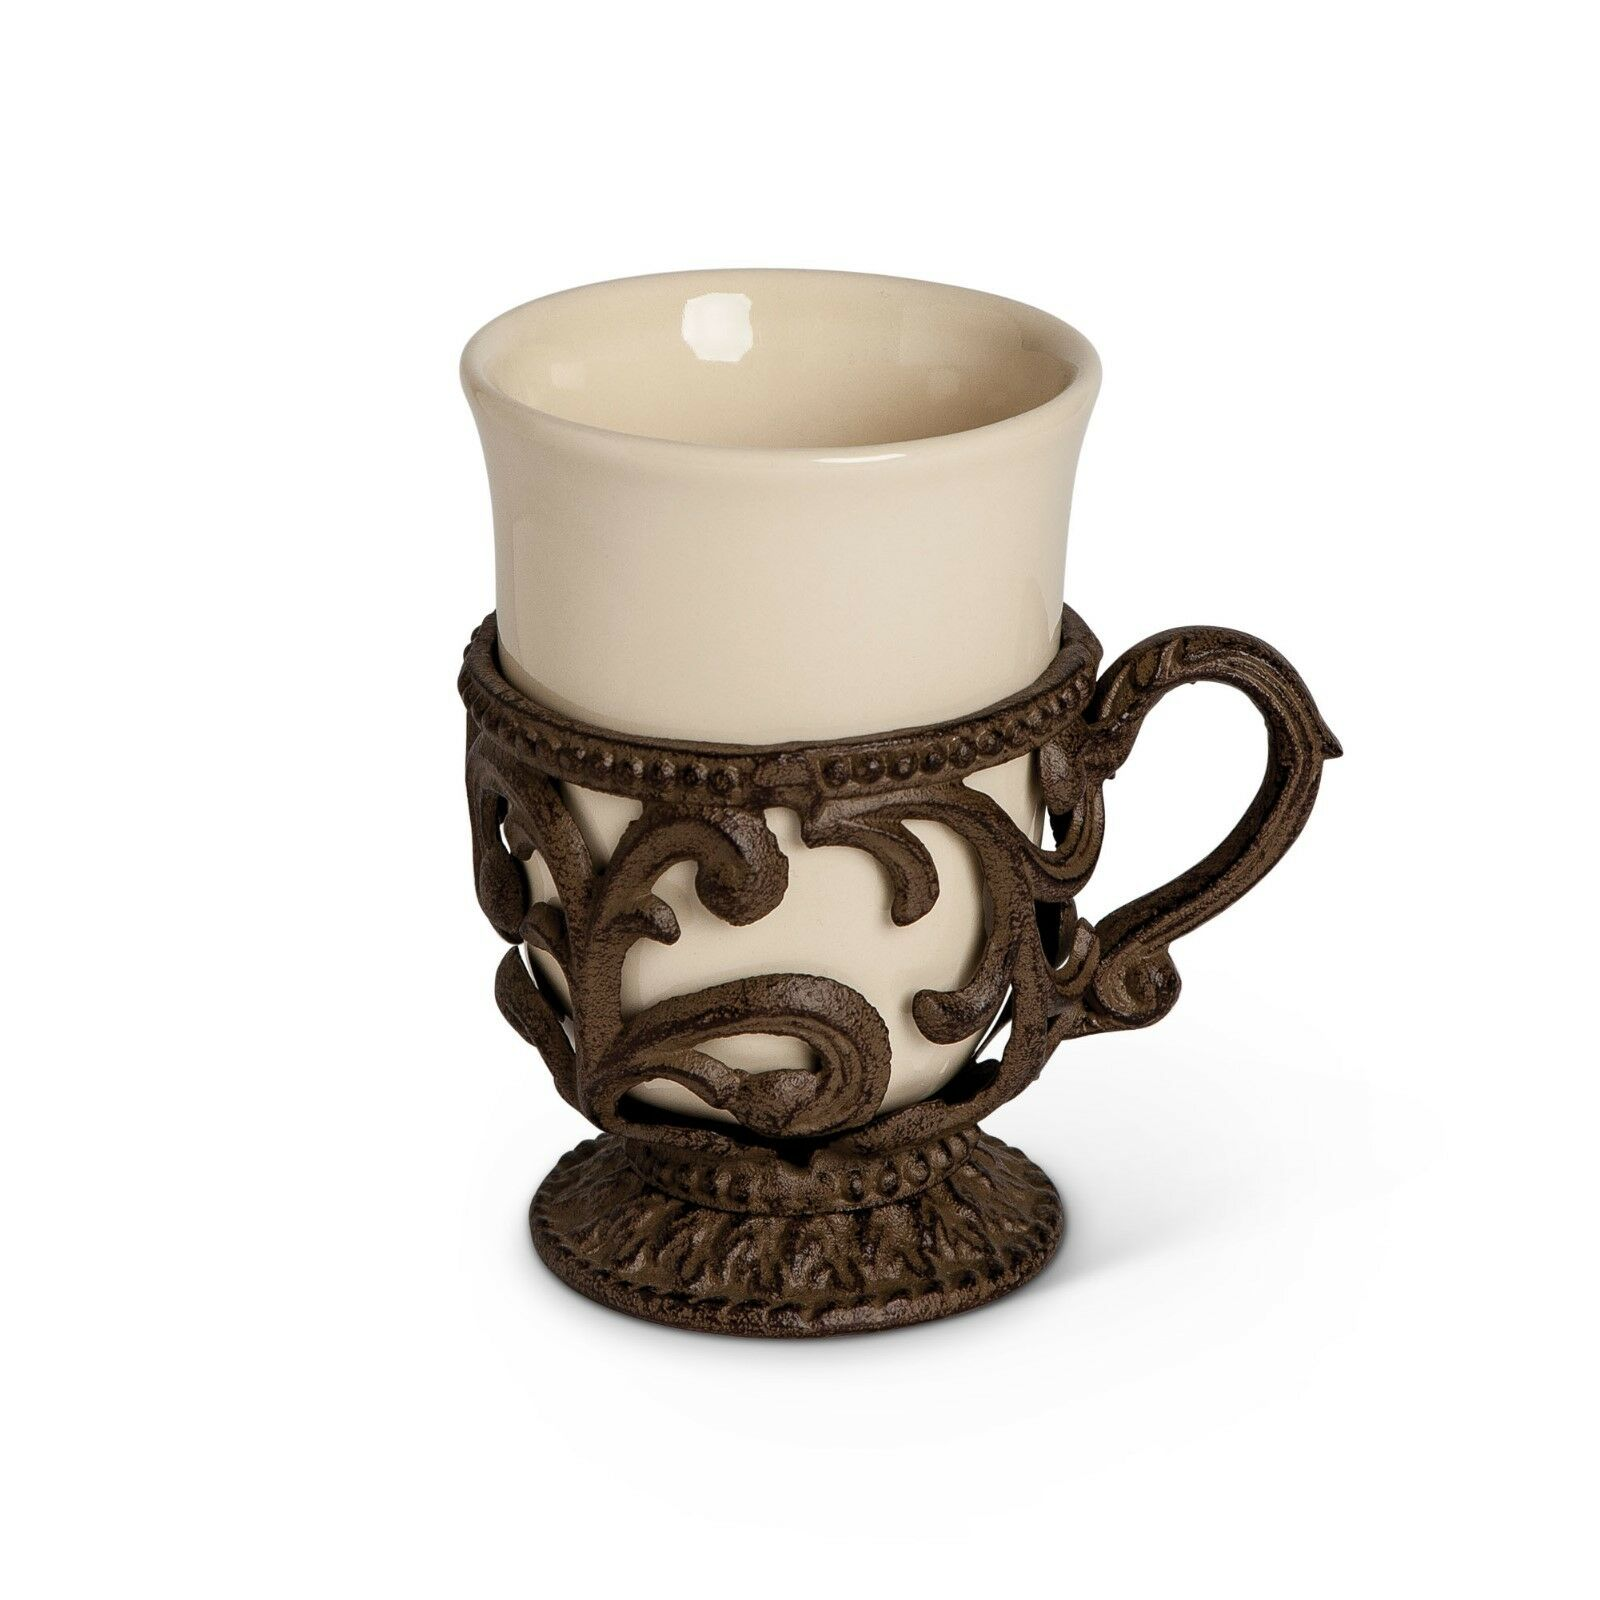 GG Collection Gracious Goods 9oz Acanthus Cup with Metal Holder, Set of 4